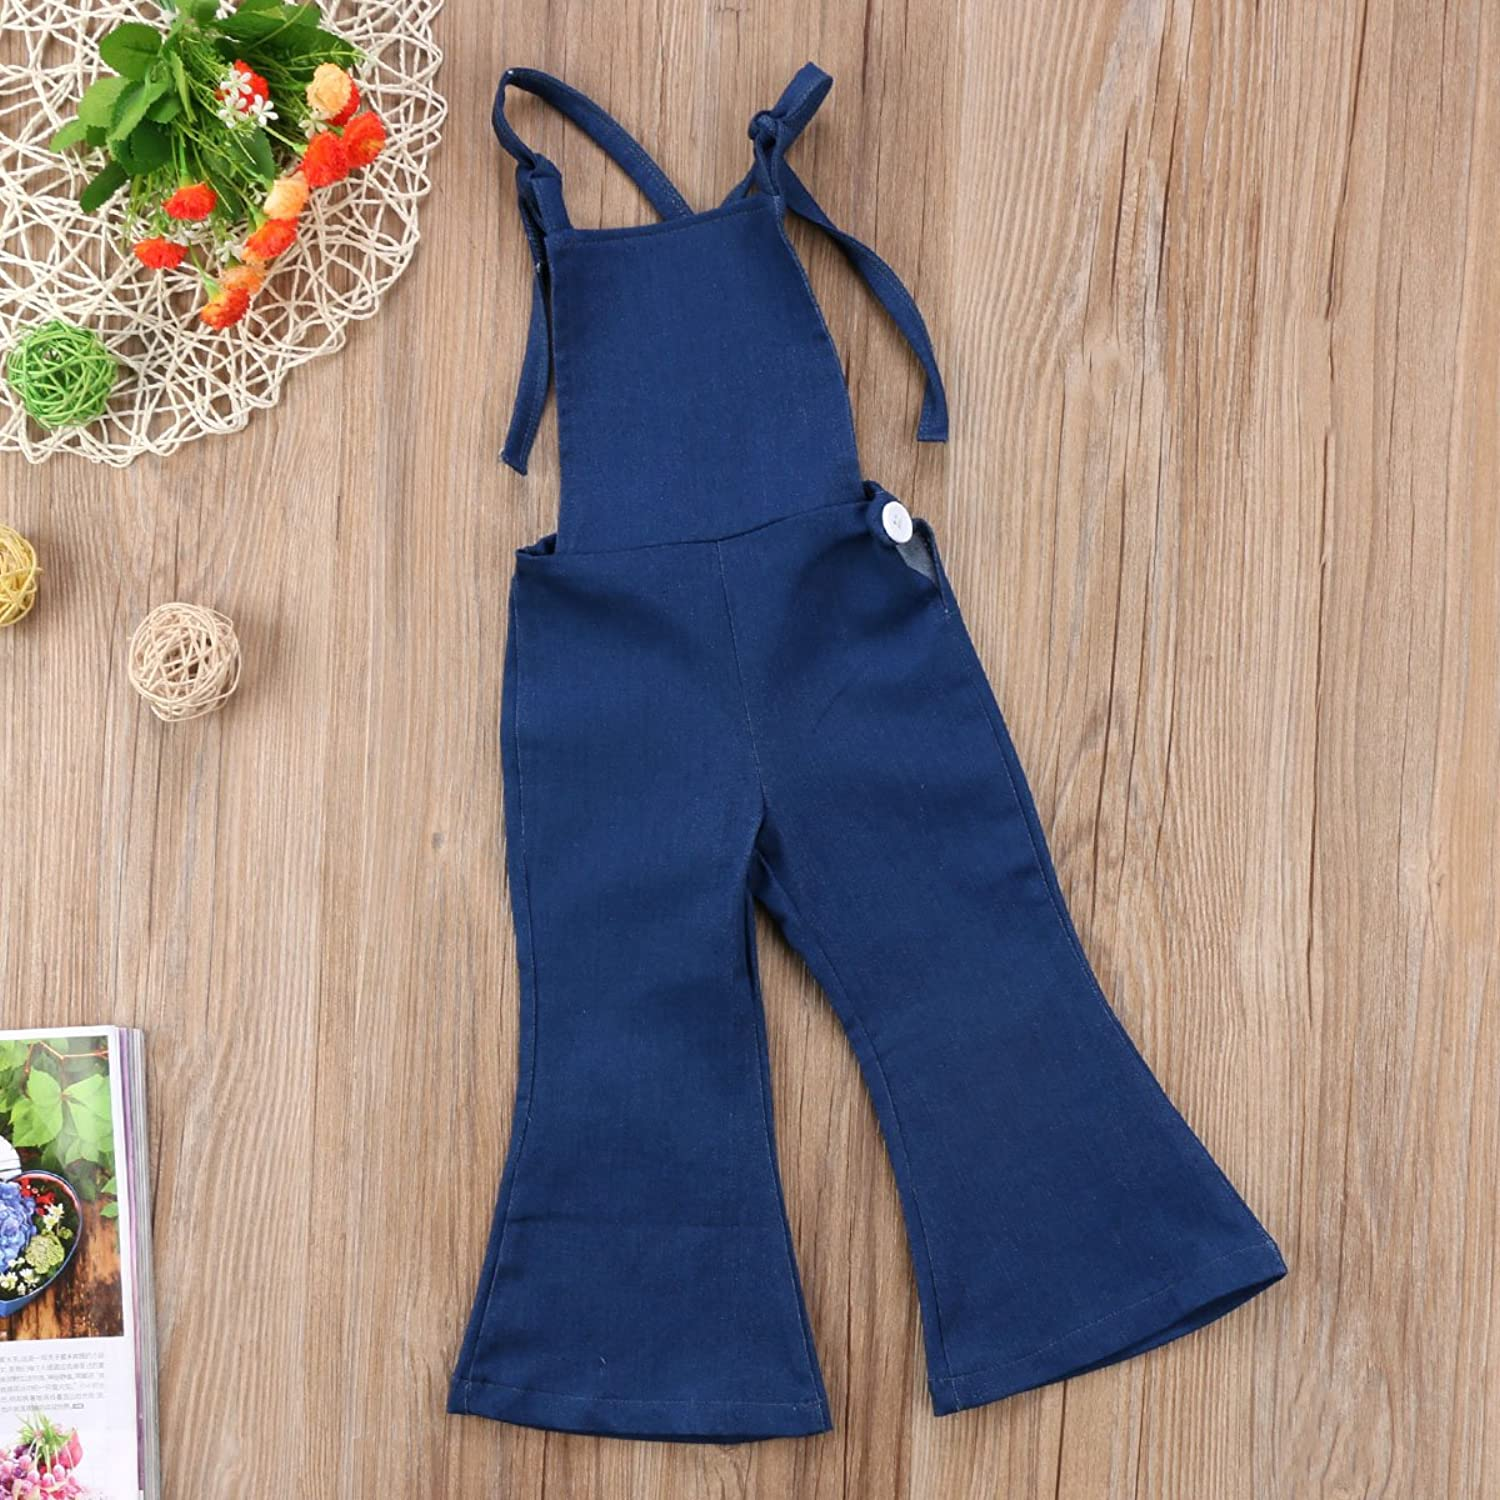 1930s Childrens Fashion: Girls, Boys, Toddler, Baby Costumes 2T - 6x Pudcoco Baby Girls Little Kids Suspender Overall Flared Denim Jeans Jumpsuit Bell Elastic Blue Pants $11.99 AT vintagedancer.com